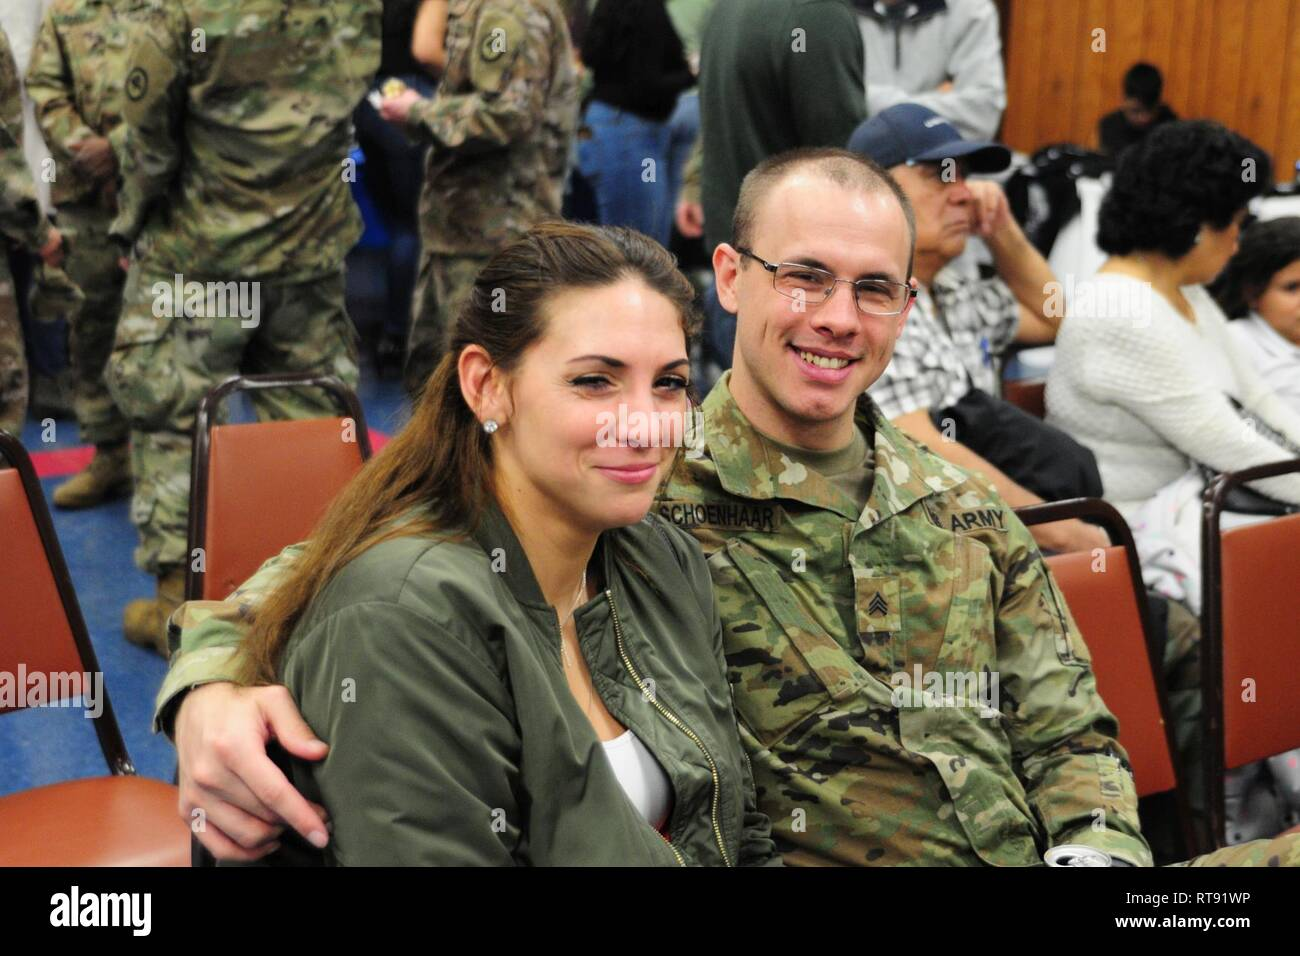 Sgt. Michael J. Schoenhaar poses for a photo with a family member at the 250th Brigade Support Battalion's farewell ceremony. Soldiers from Hotel Company, 250th BSB, said farewell to family, friends and New Jersey National Guard leadership at a farewell ceremony Feb. 5, 2019 at the Veterans of Foreign Wars Post 5084 in Elmwood Park, New Jersey. The Teaneck-based Soldiers will deploy to the Horn of Africa in support of Operation Enduring Freedom. - Stock Image